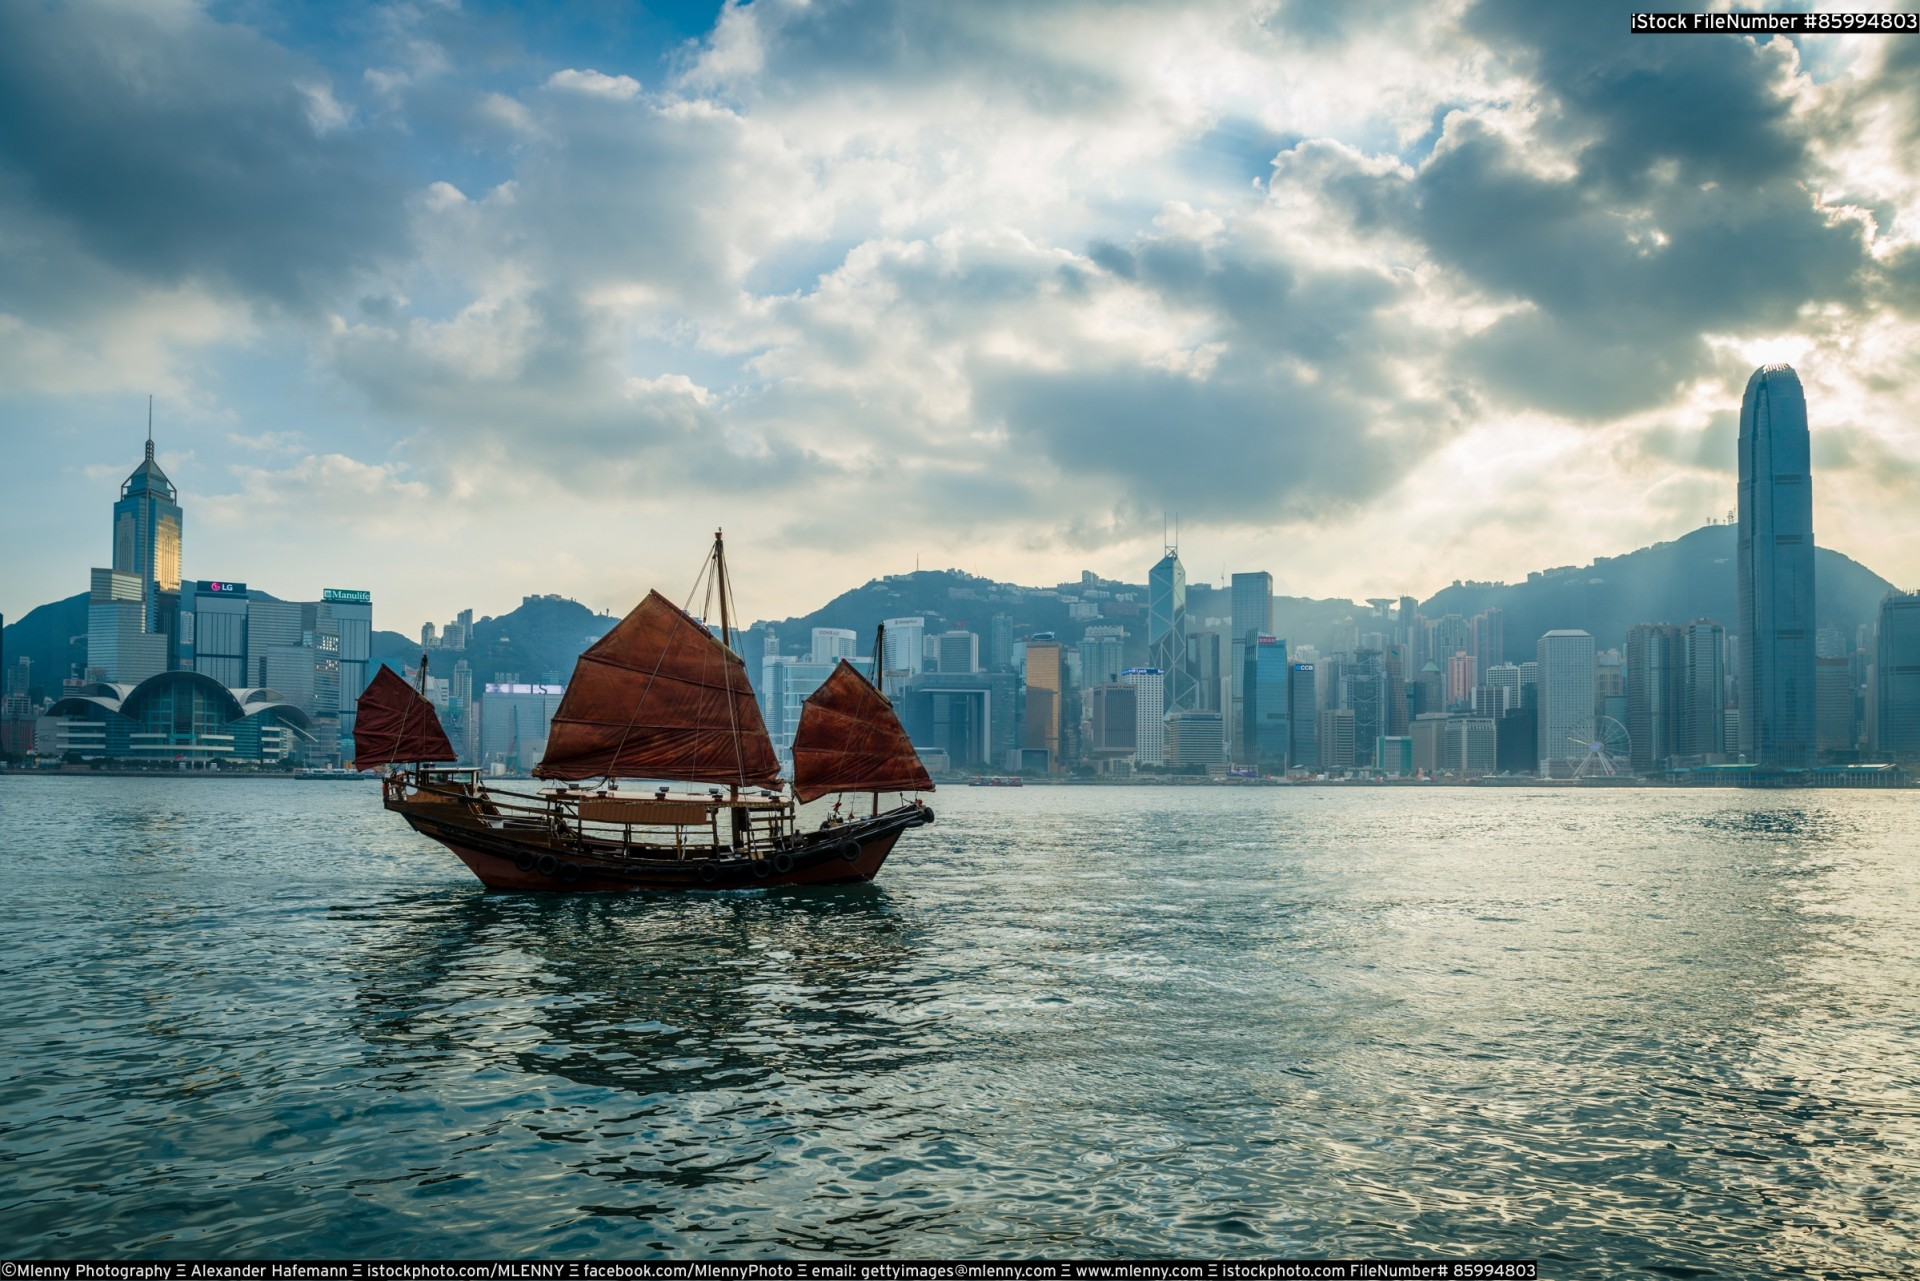 Junkboat sailing along skyline of Hong Kong